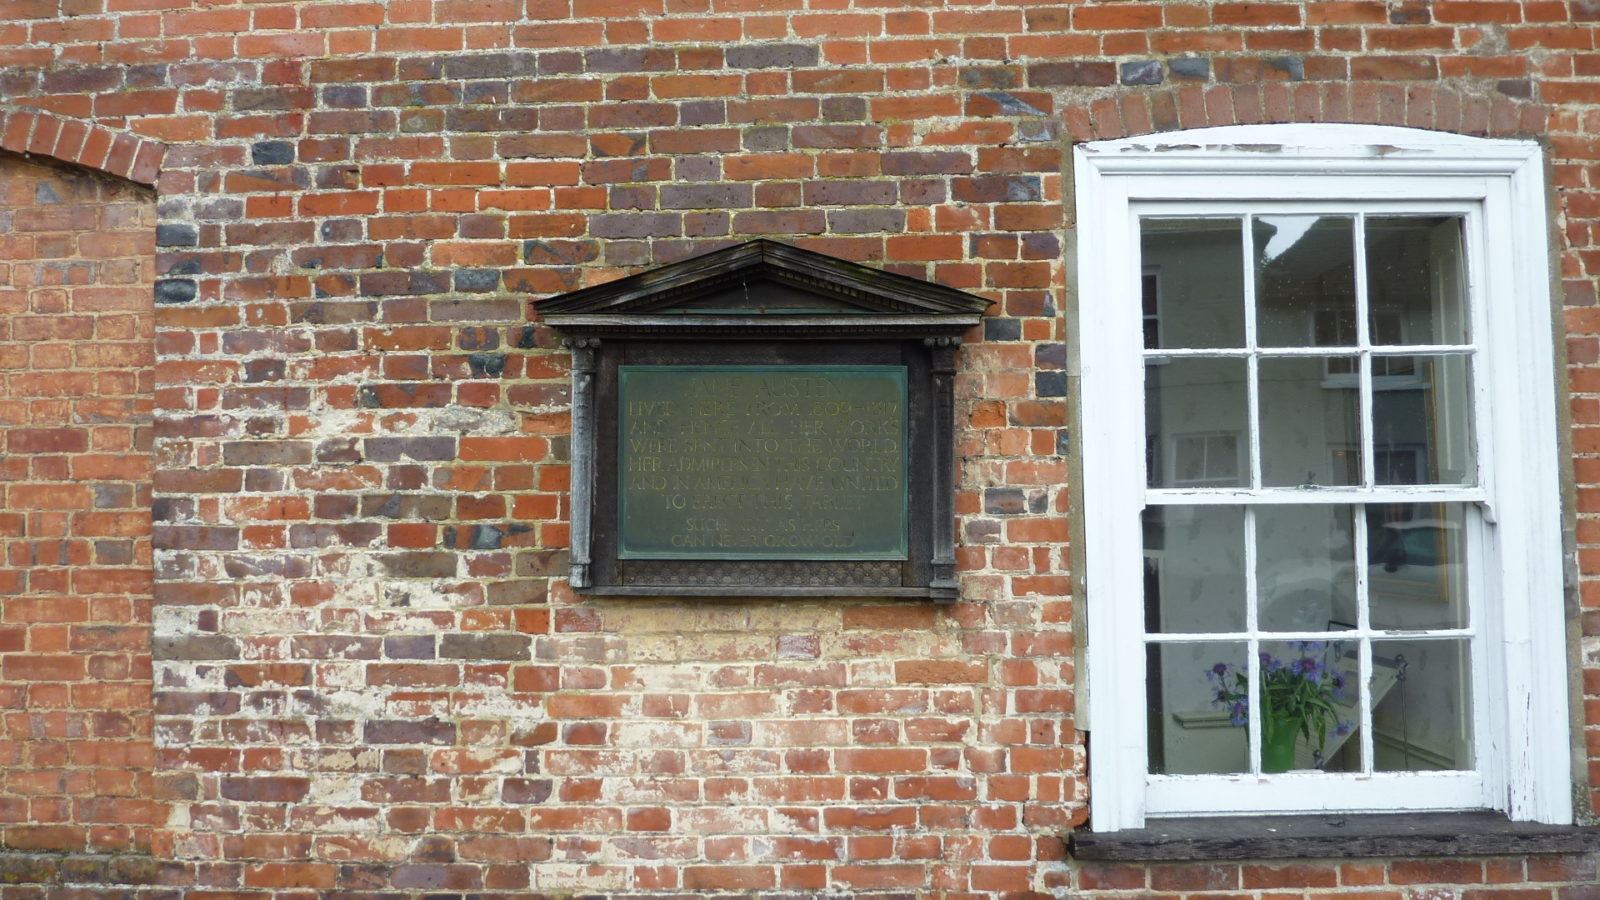 Memorial plaque on the front wall of Jane Austen's House